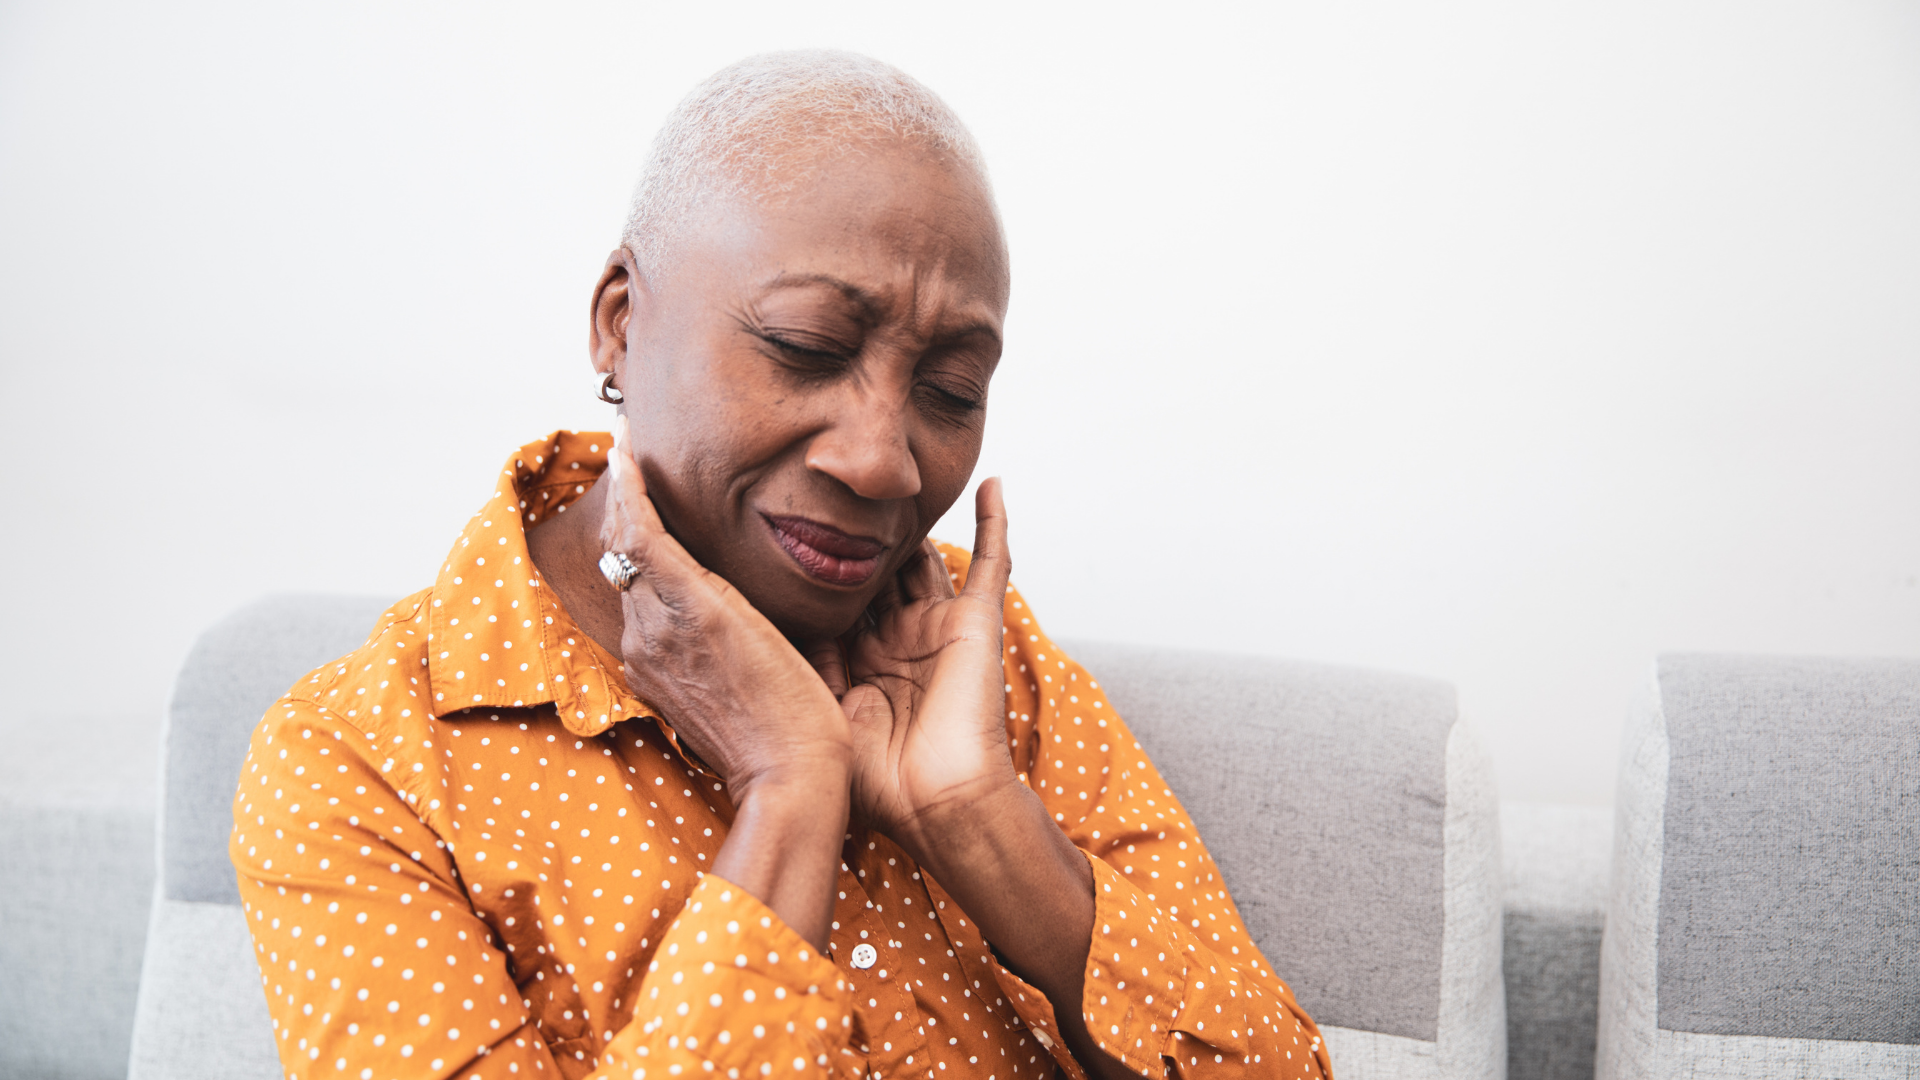 Finding relief for neck pain